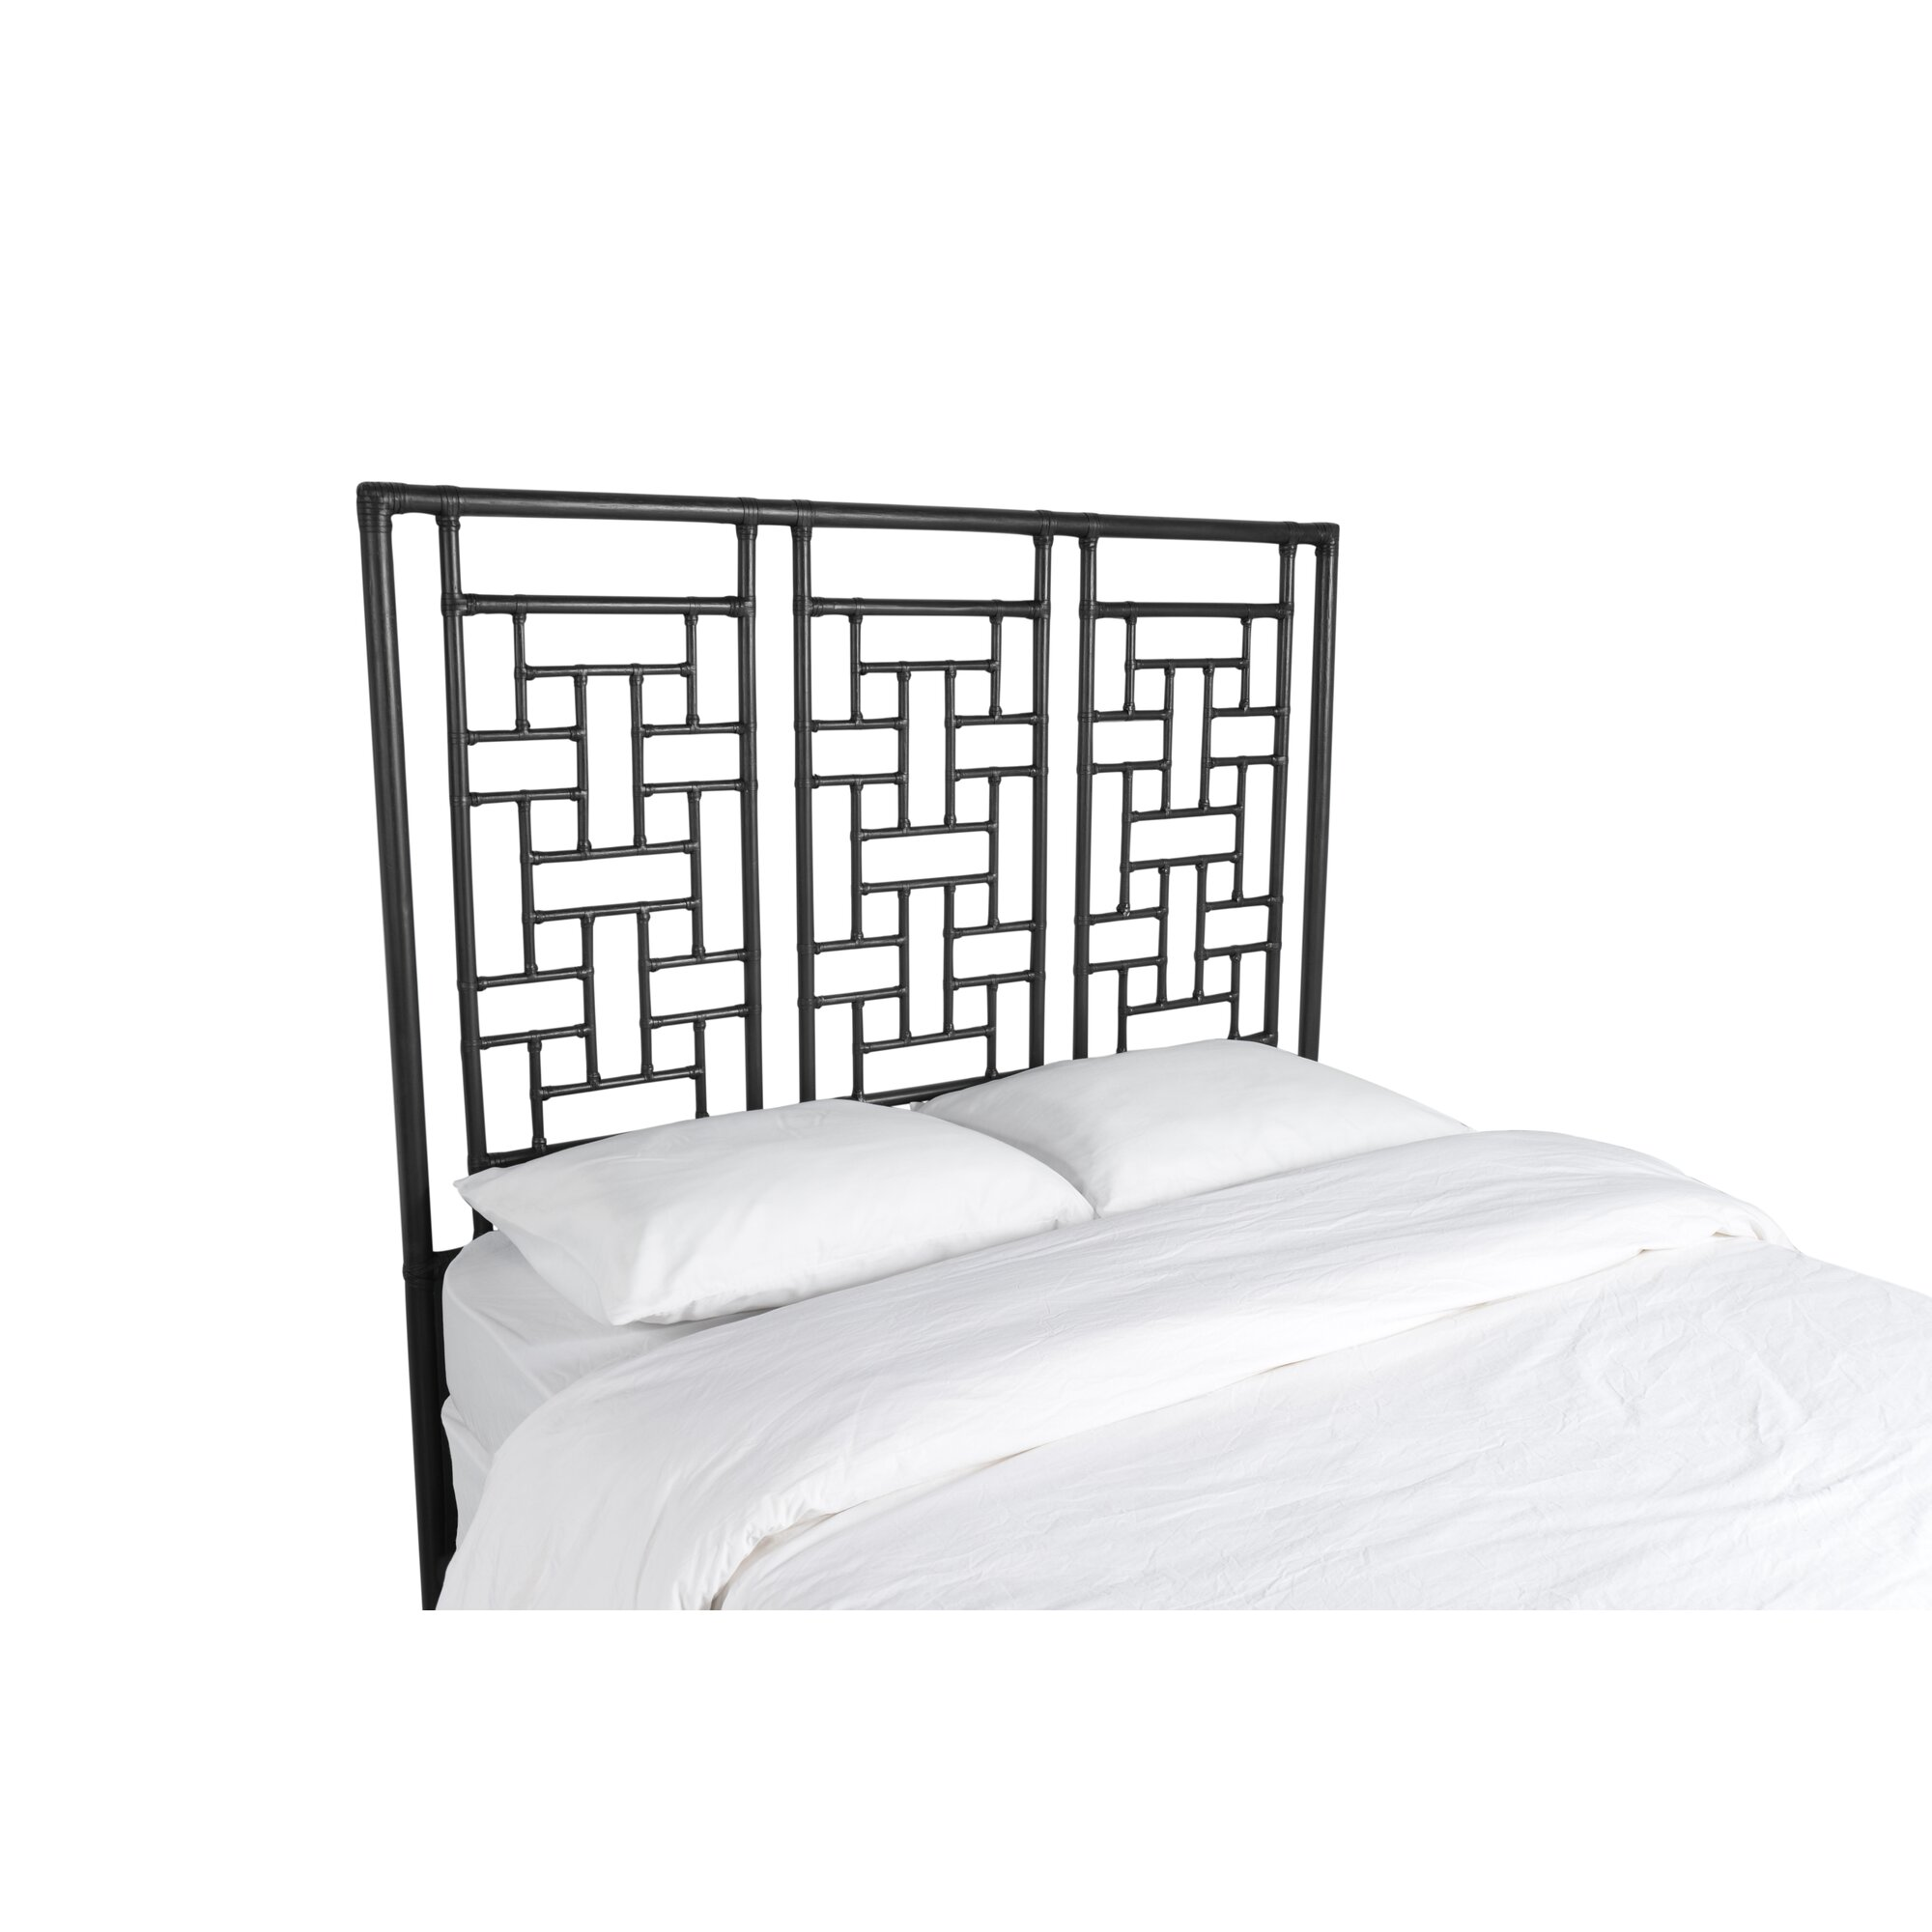 18 rattan headboards for king beds ashworth curved queen he